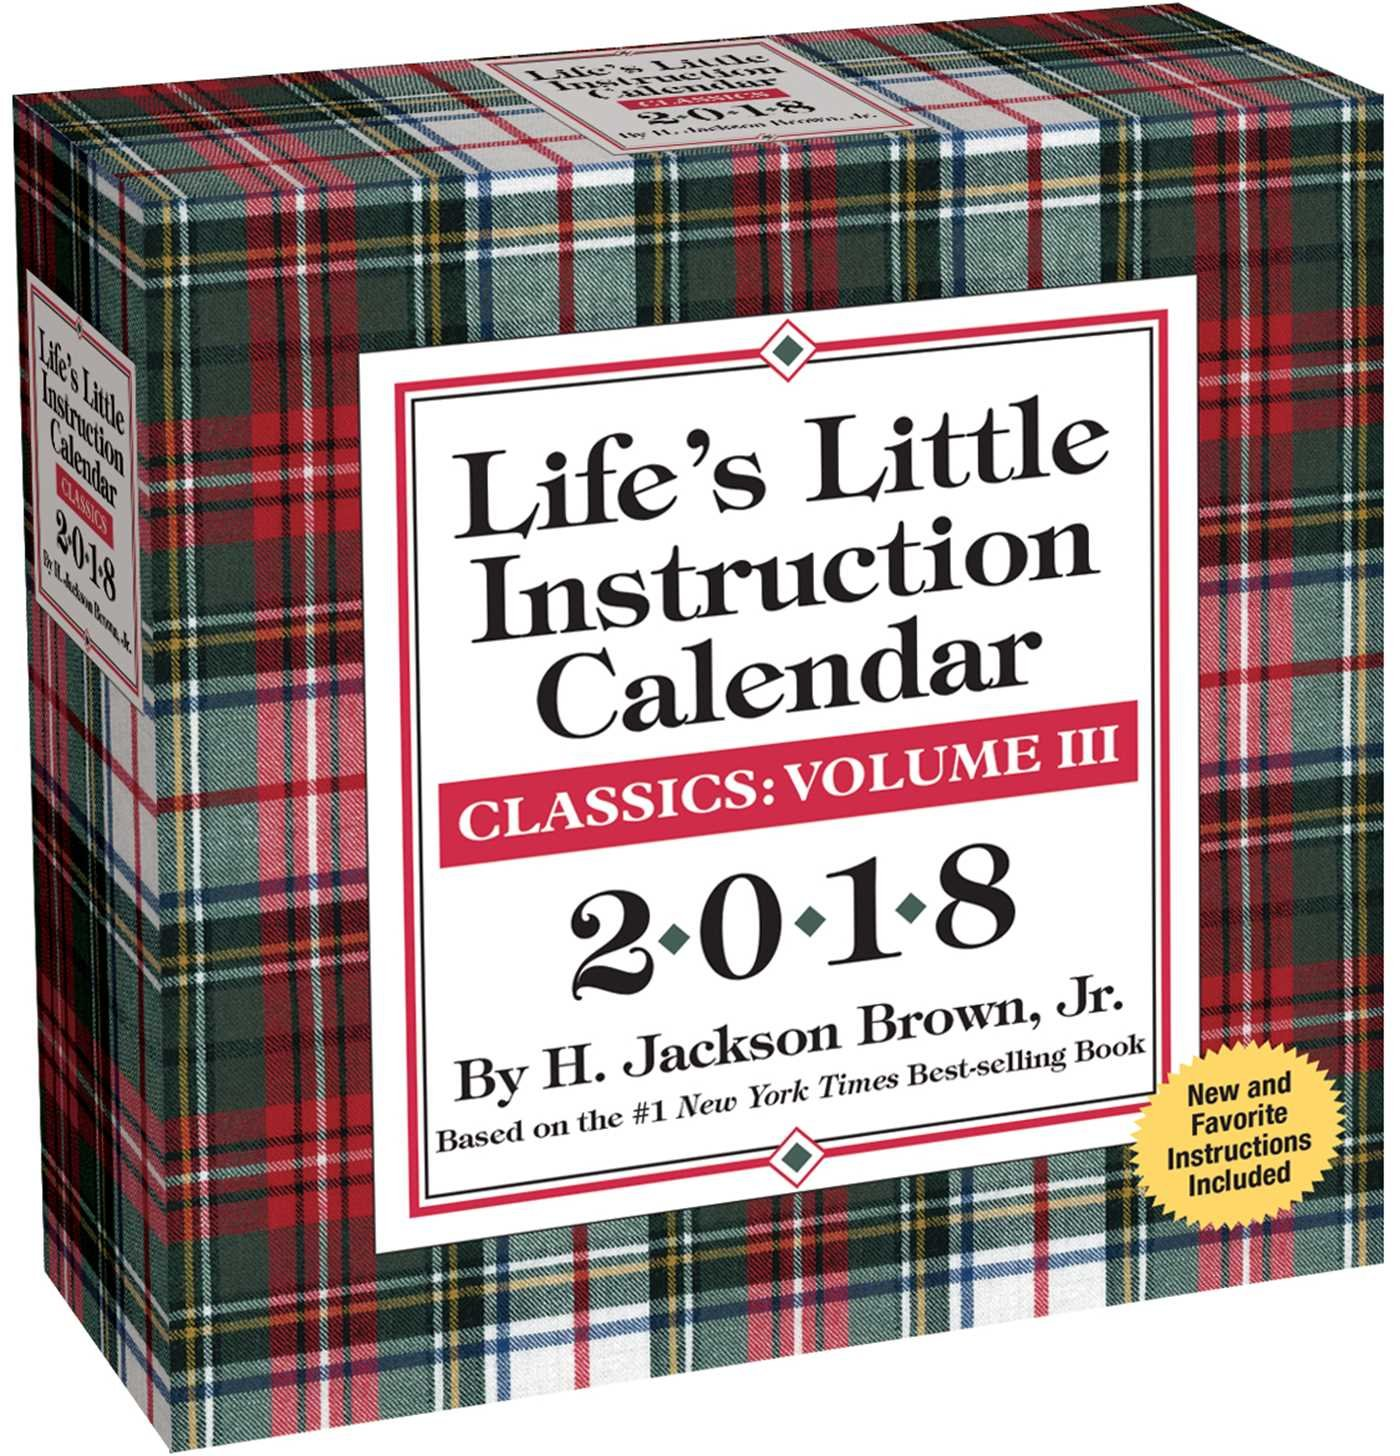 Life's Little Instruction 2018 Day-to-Day Calendar Calendar – Day to Day Calendar, Desk Calendar H. Jackson Brown Andrews McMeel Publishing 1449482848 Mind